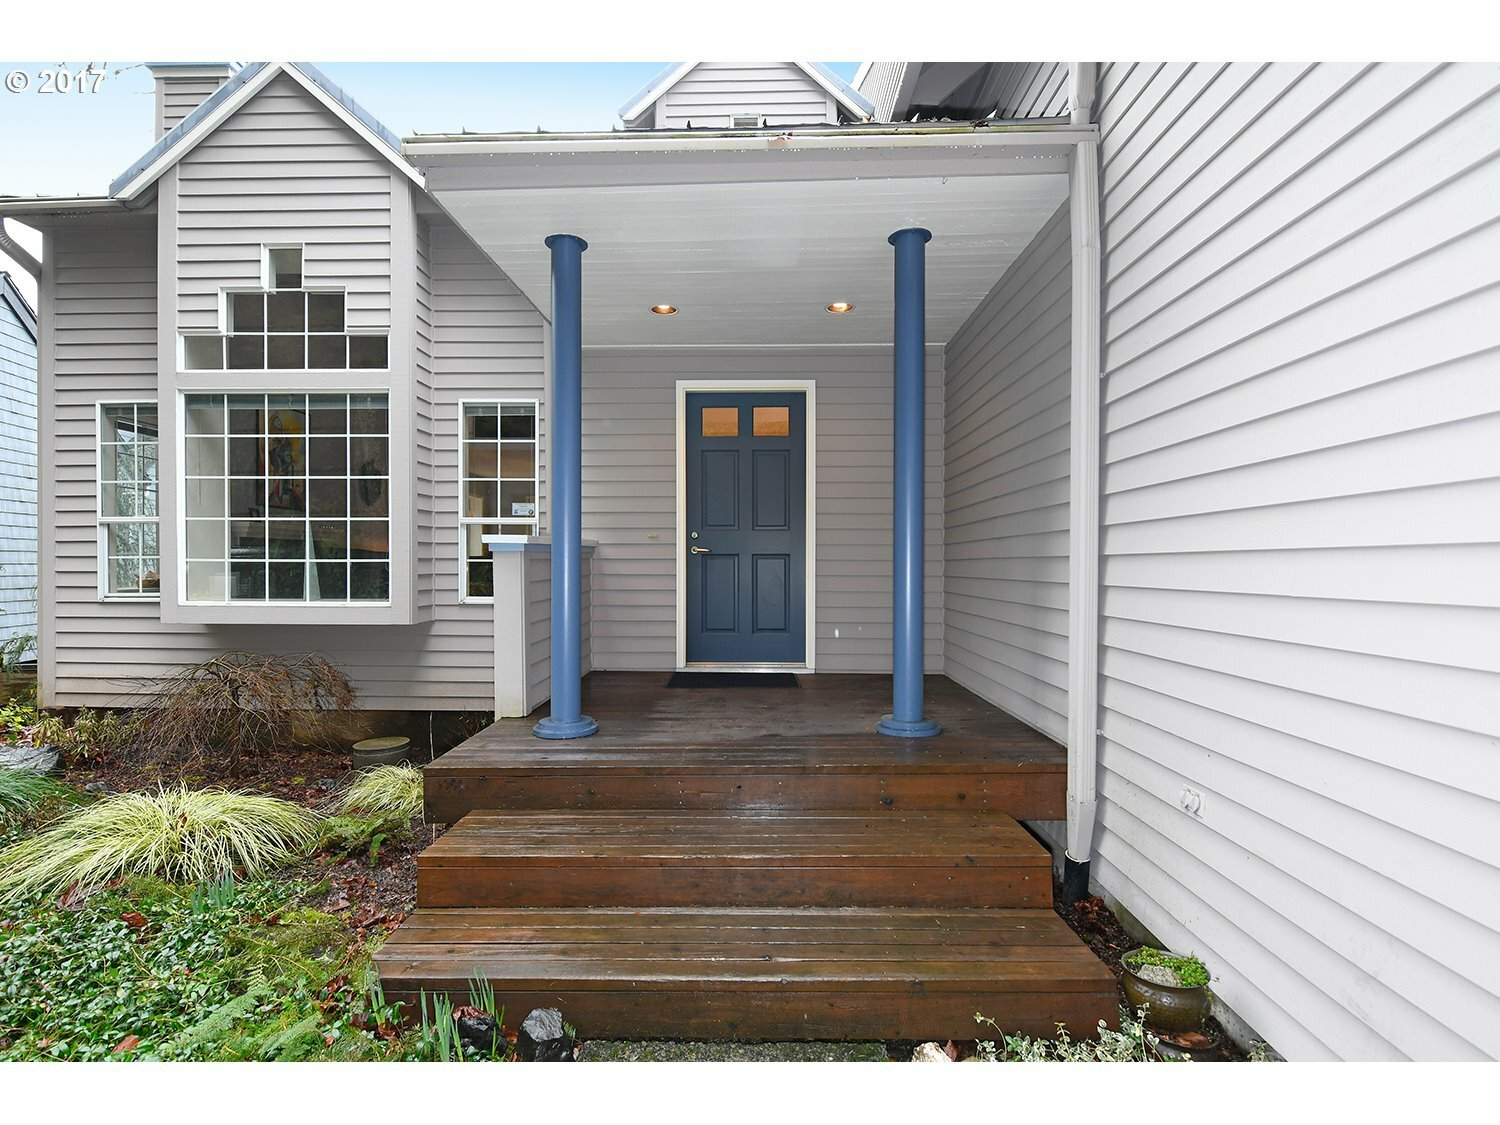 2606 Sw Fairmount Blvd, Portland, OR - USA (photo 4)